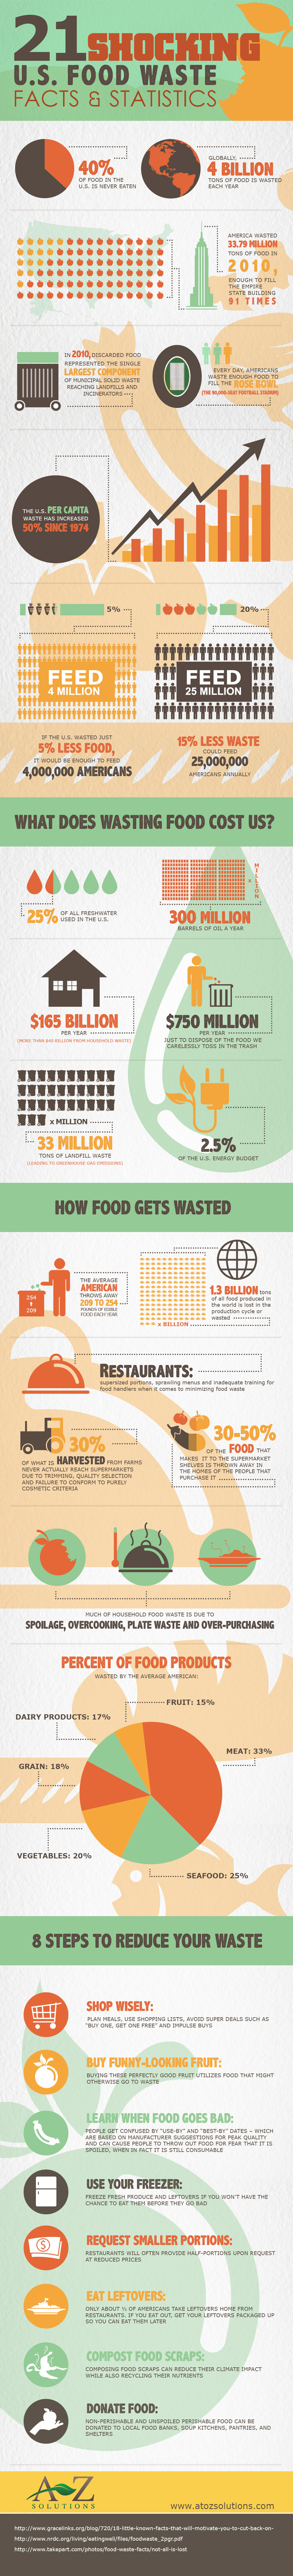 21 shocking us food waste facts